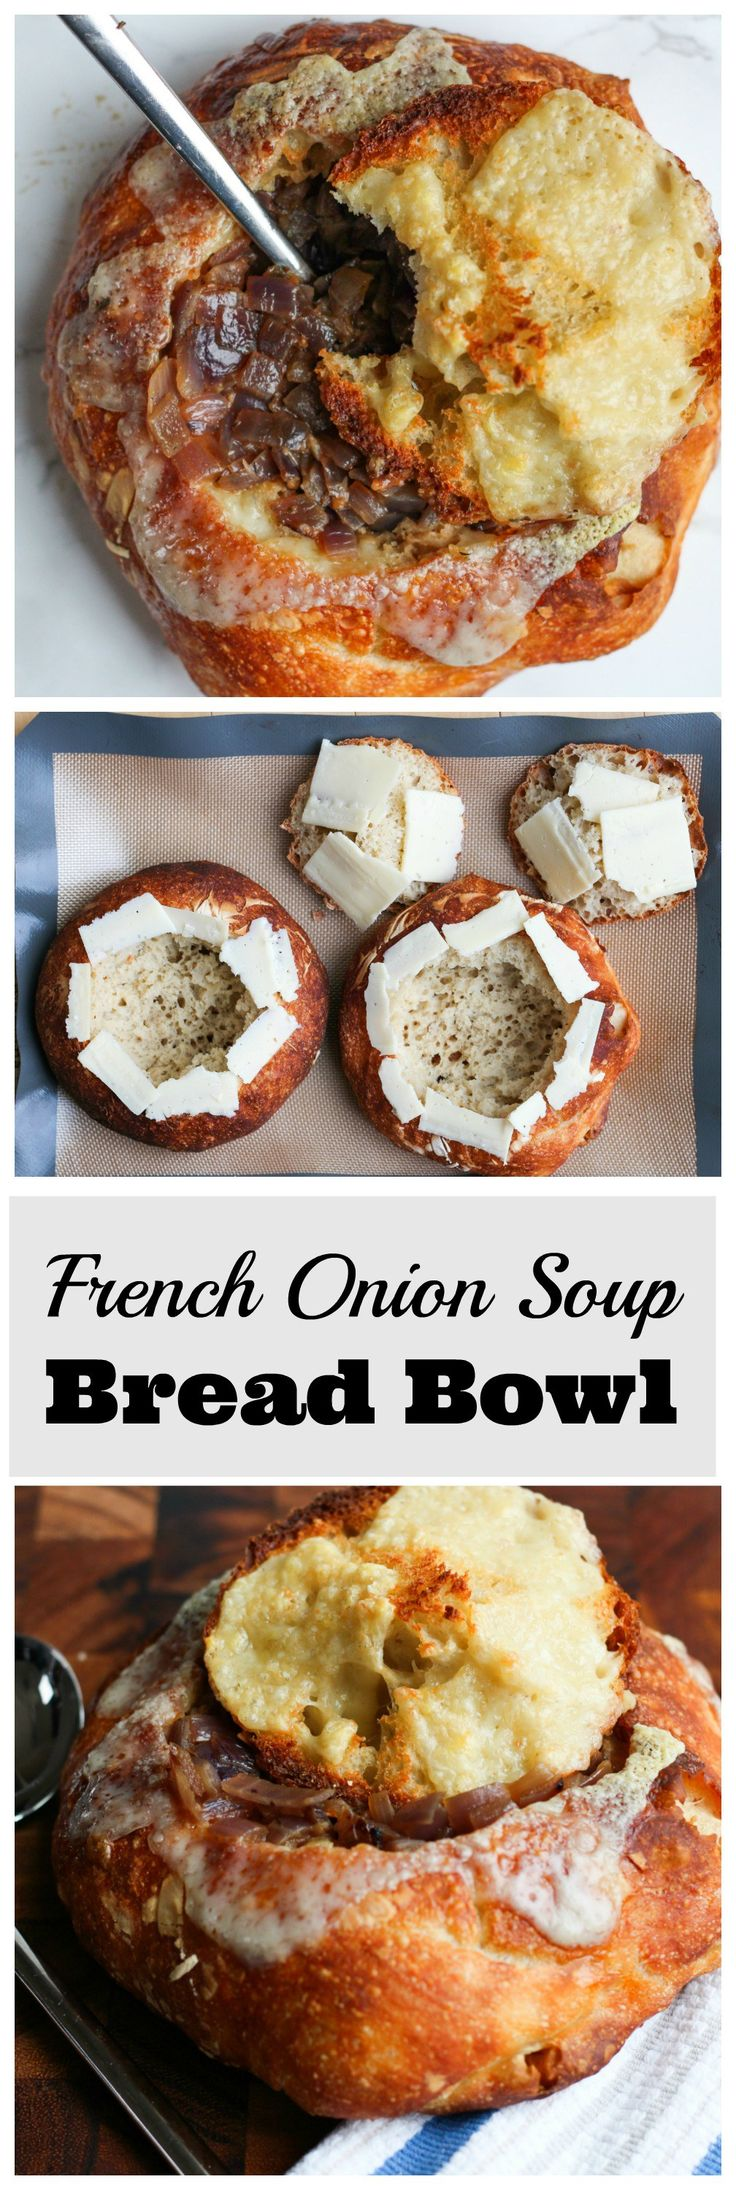 French Onion Soup in a Bread Bowl!